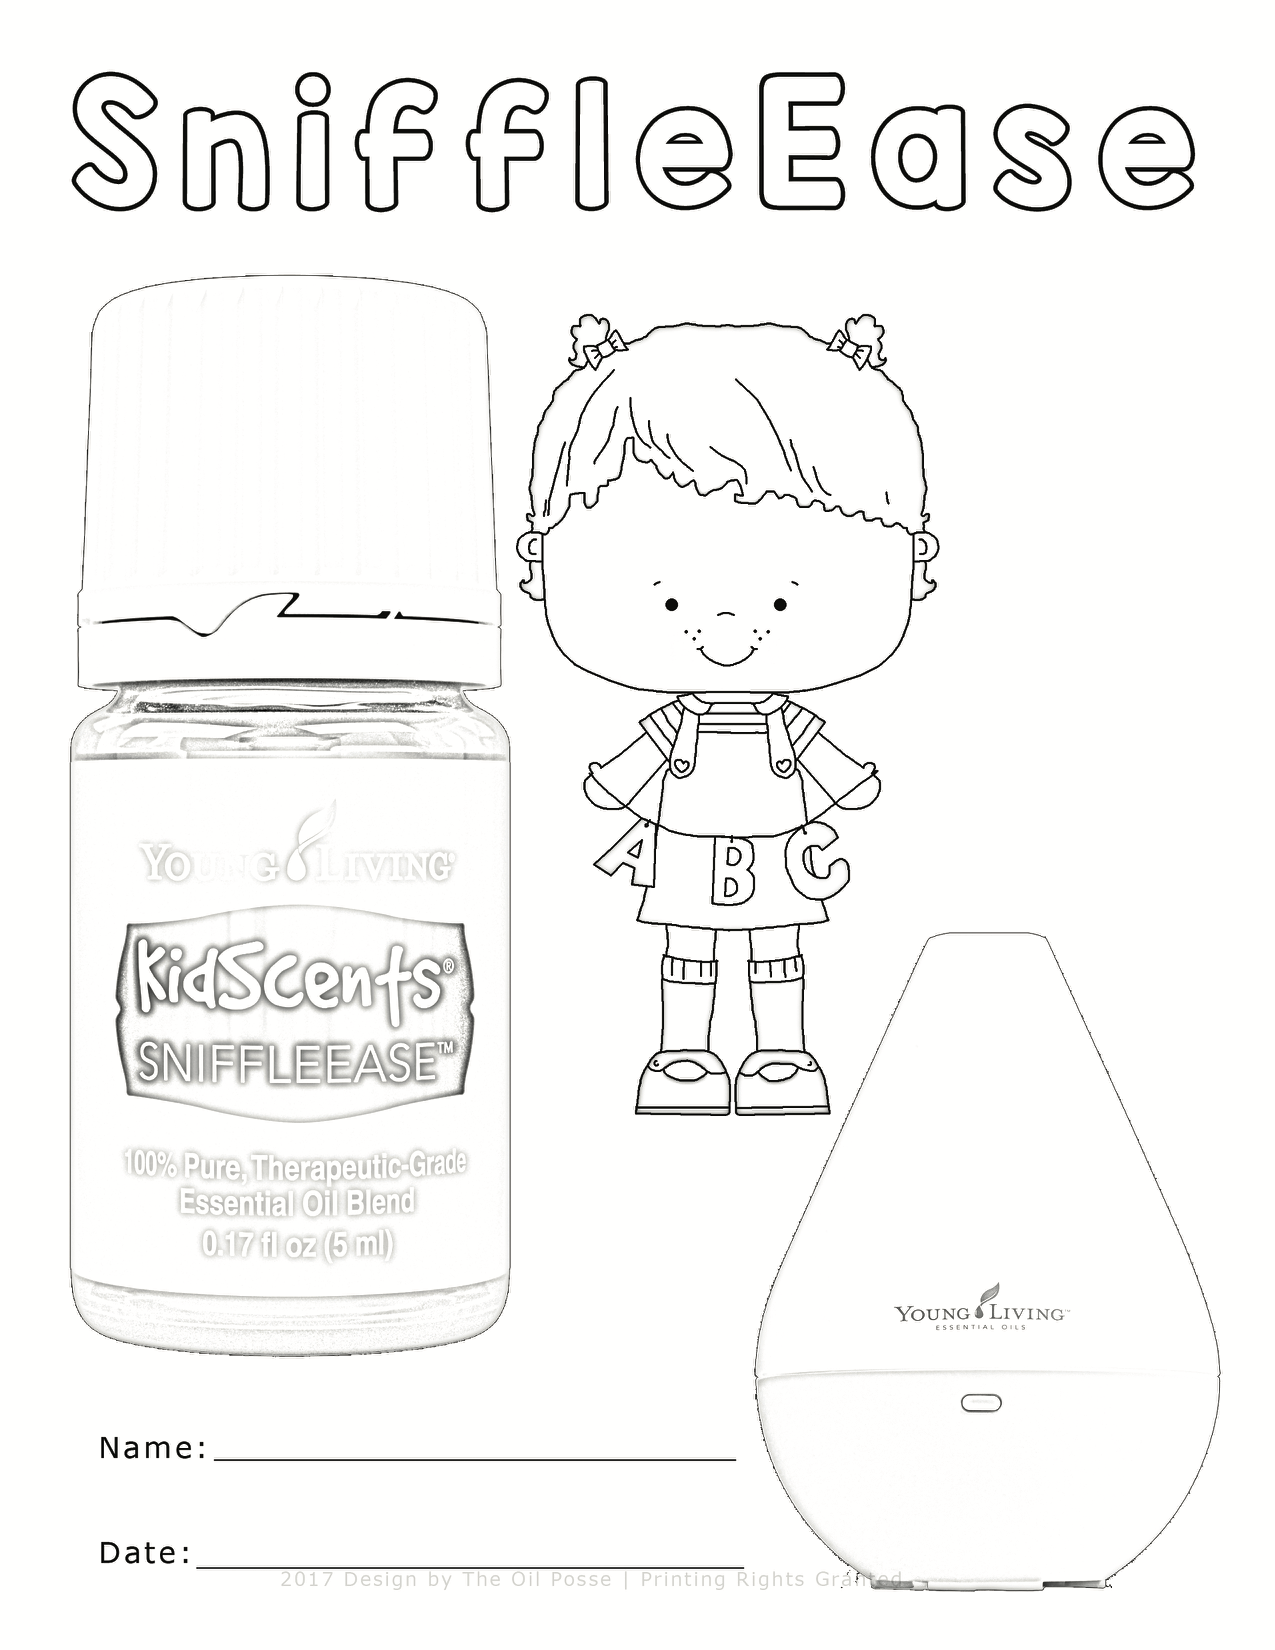 1275x1650 Five Kidscents Coloring Pages The Oil Posse